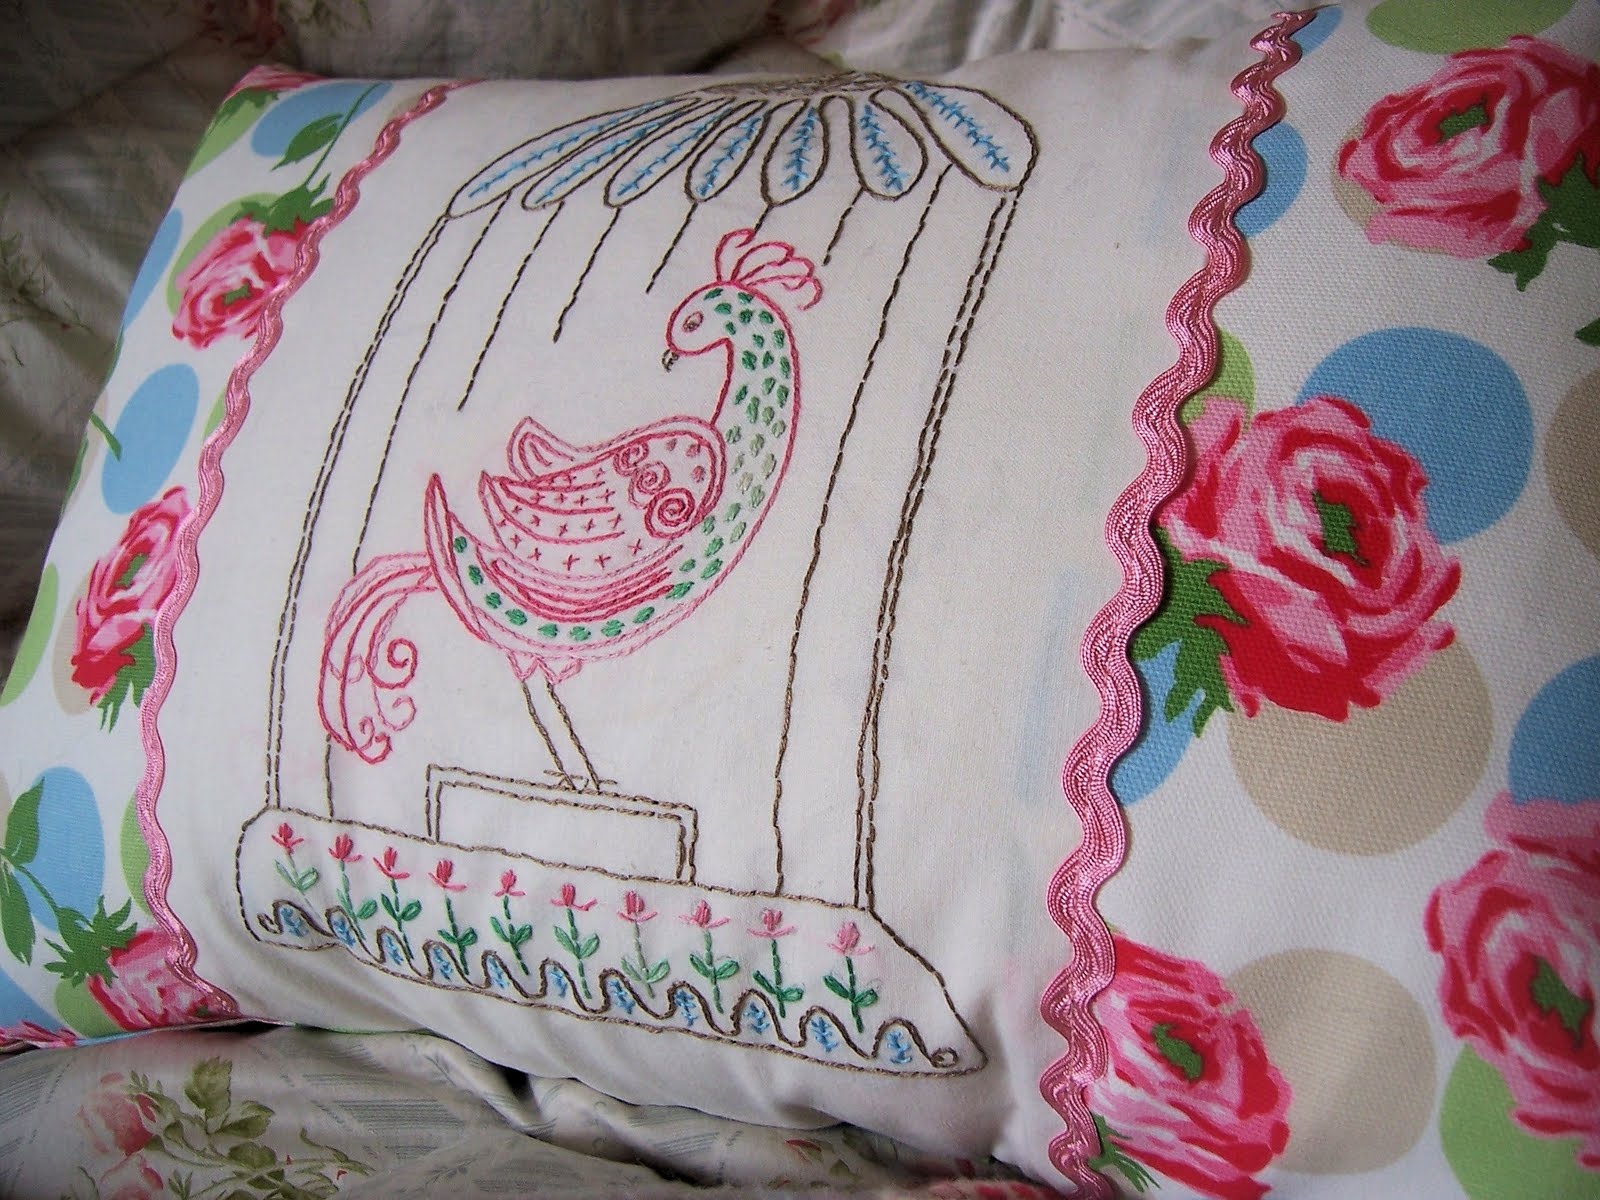 Groovy bird embroidered pillow tutorial bustle sew